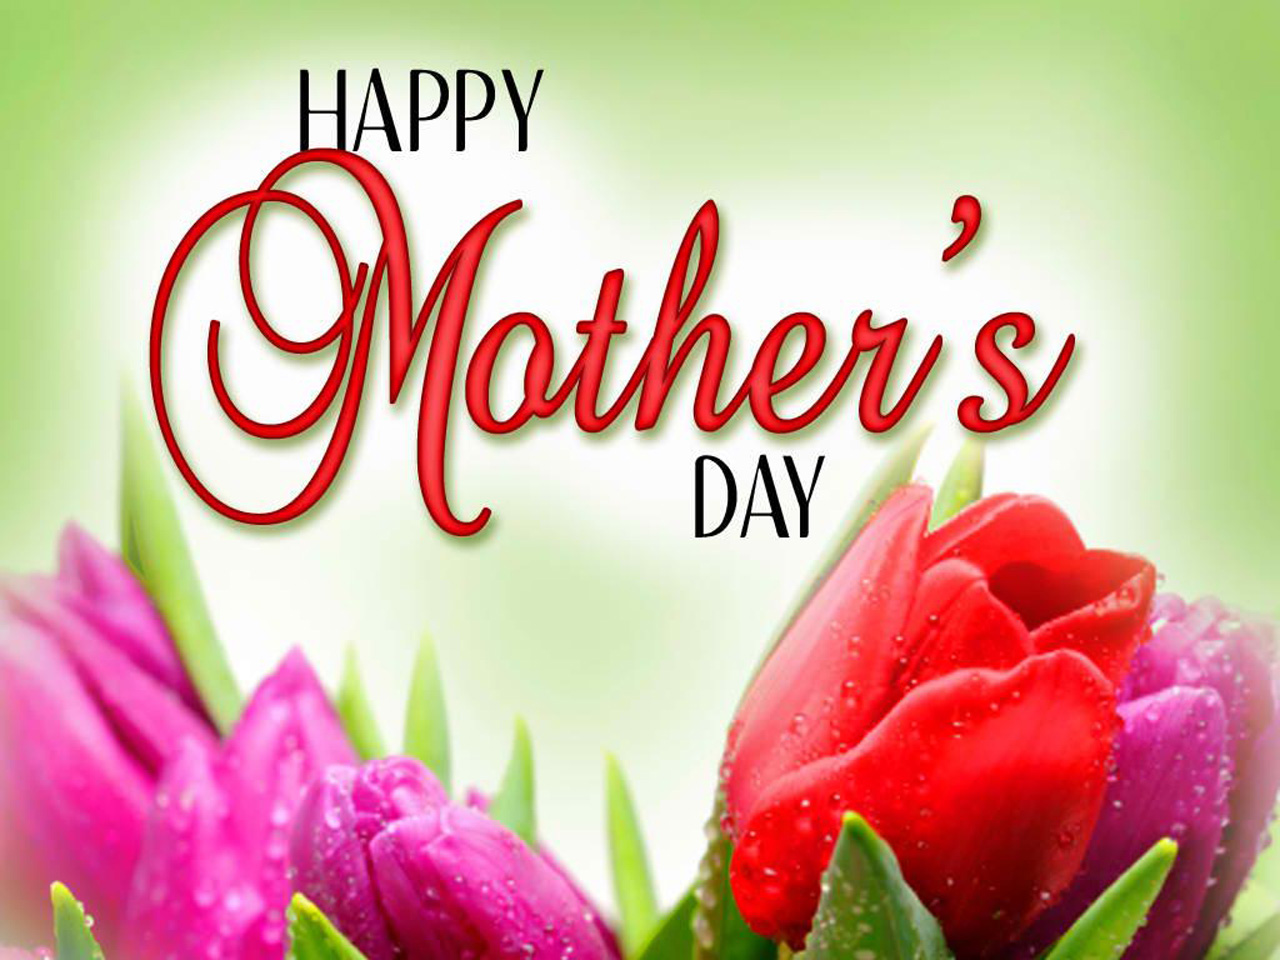 Happy Mothers Day Images Pictures Hd Wallpapers Photos 2019